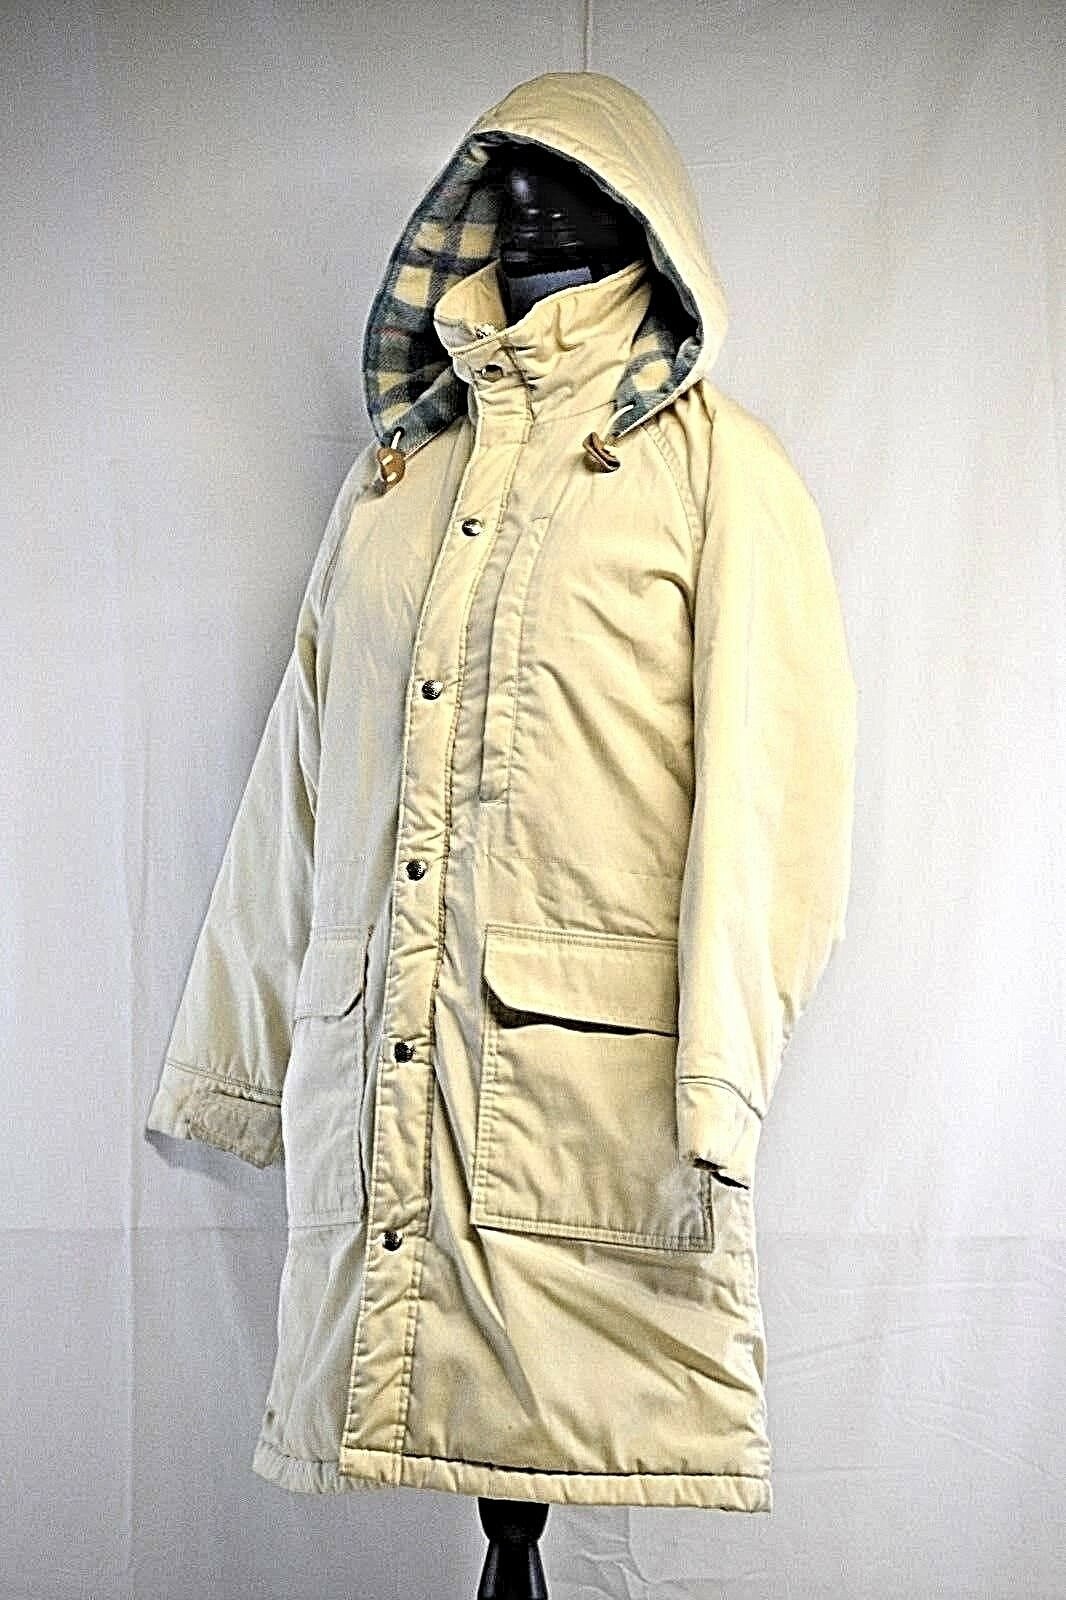 ... L.L.BEAN Sz Damenschuhe Beige Long Winter Warmer Hooded Parka Coat Sz  L.L.BEAN M 18fd33 ... 2beb460e59